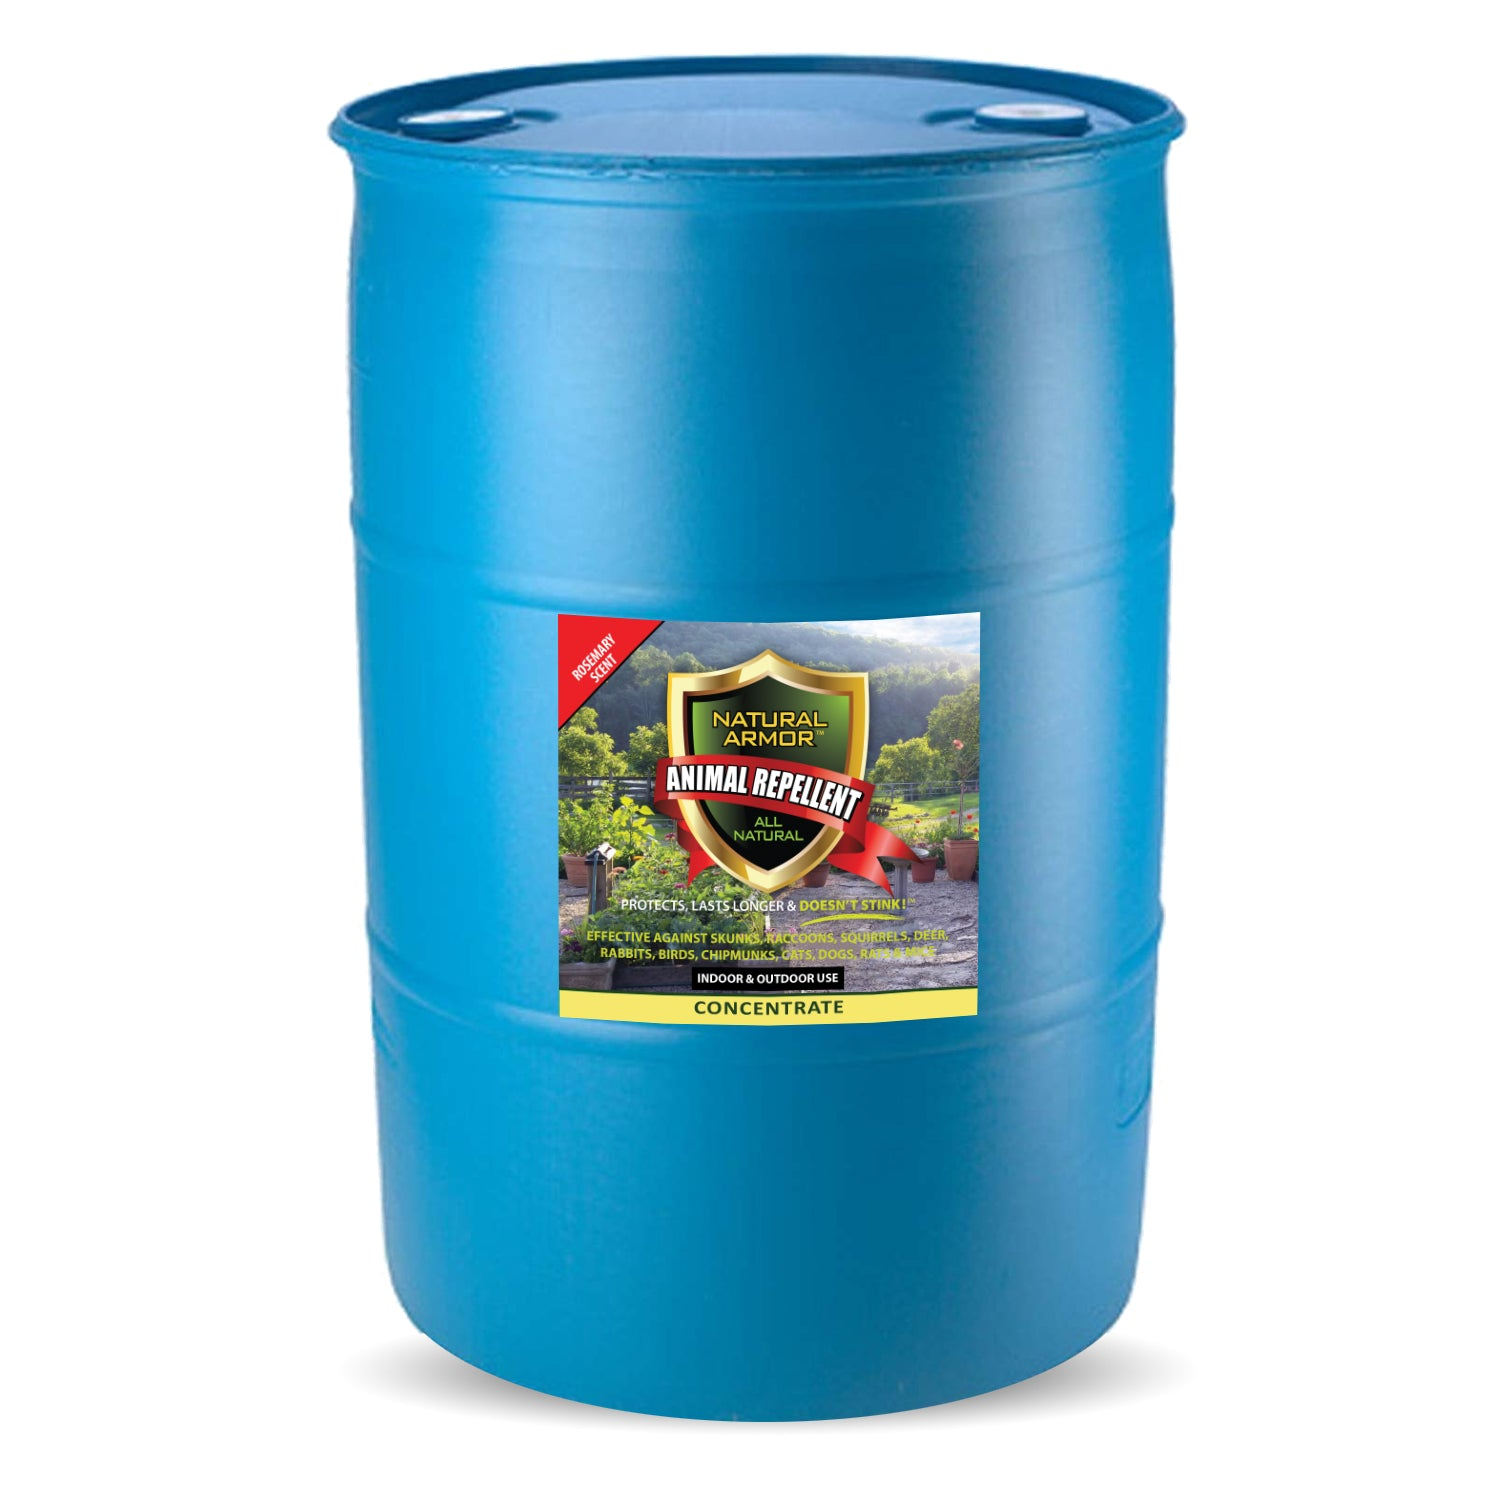 Animal Repellent ––– Rosemary Scent (1) 55 GALLON DRUM CONCENTRATE